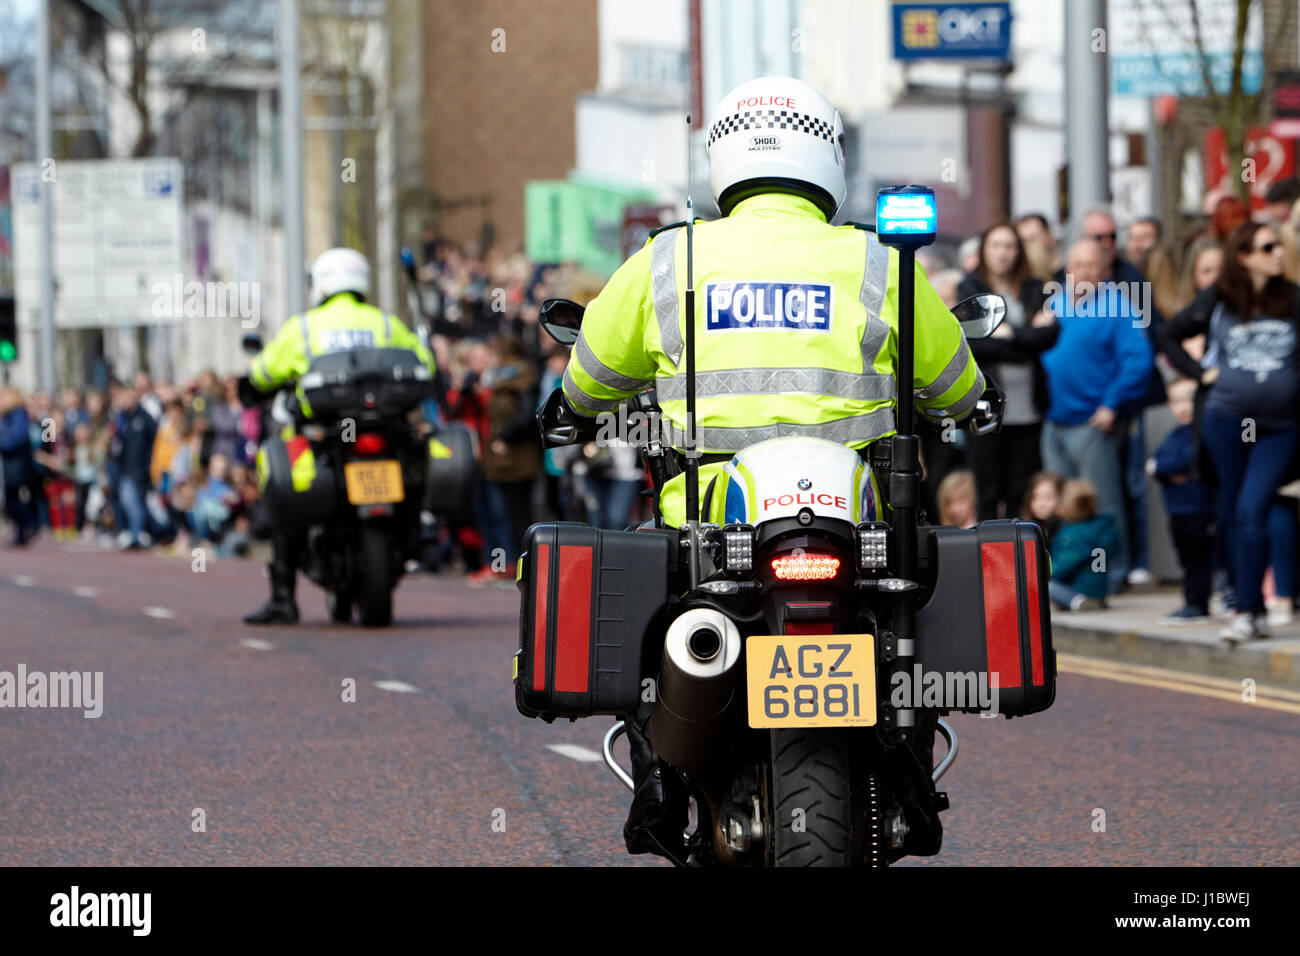 psni police officer traffic police on bmw motorbike during a parade in northern ireland Stock Photo